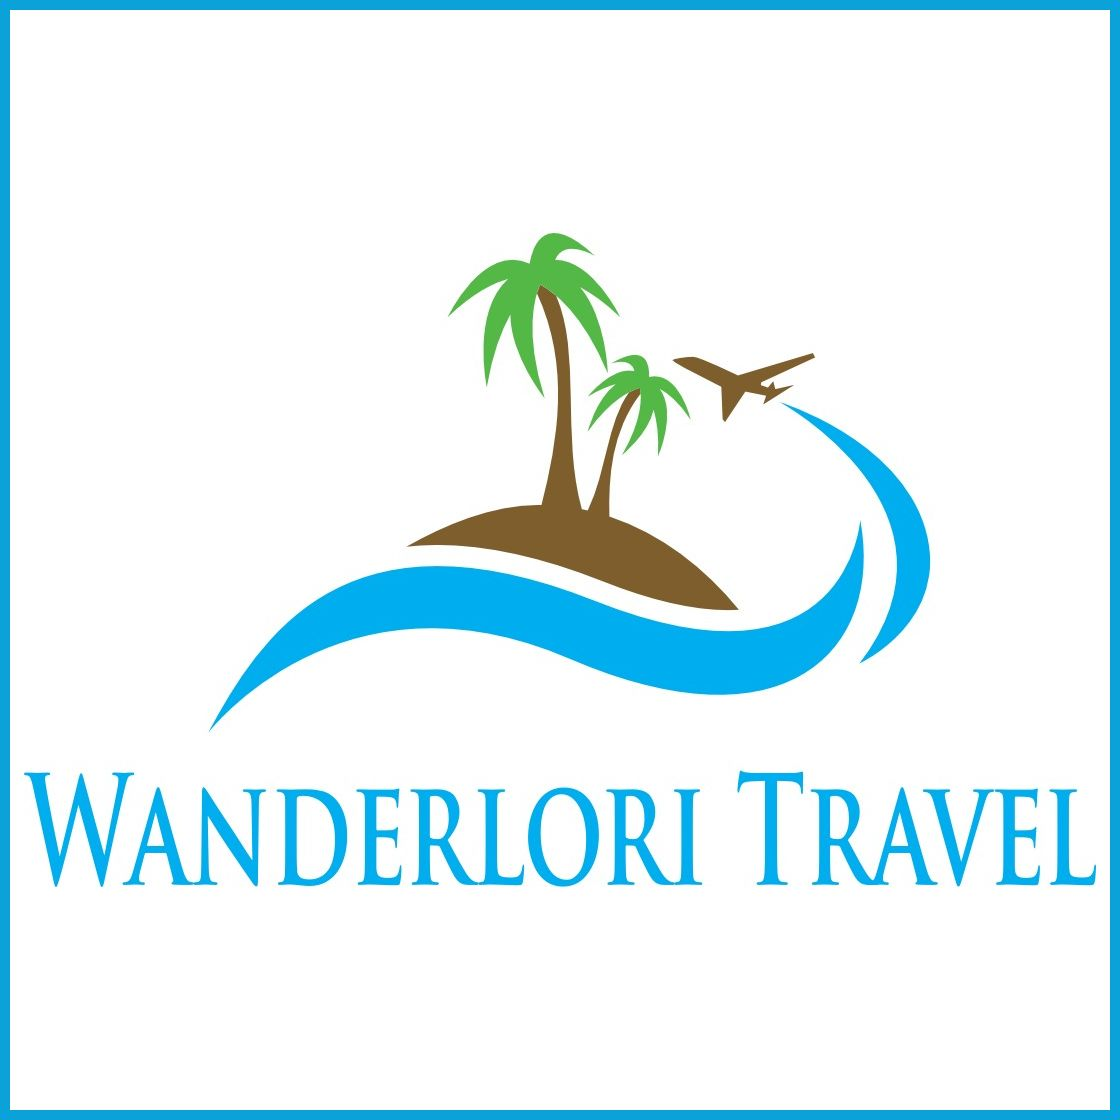 WanderLori Travel